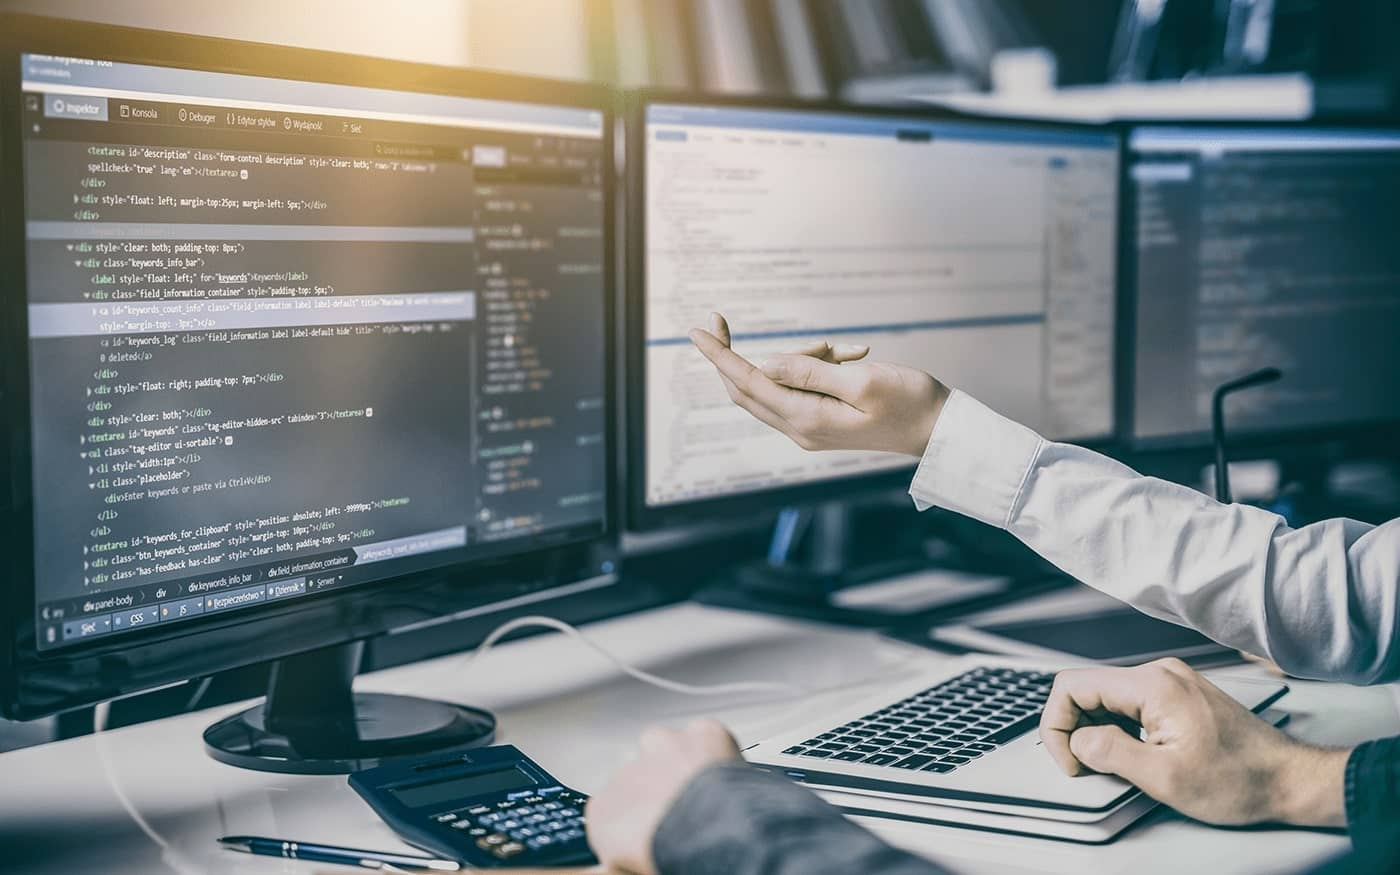 7 Dying Programming Languages to Avoid in 2021